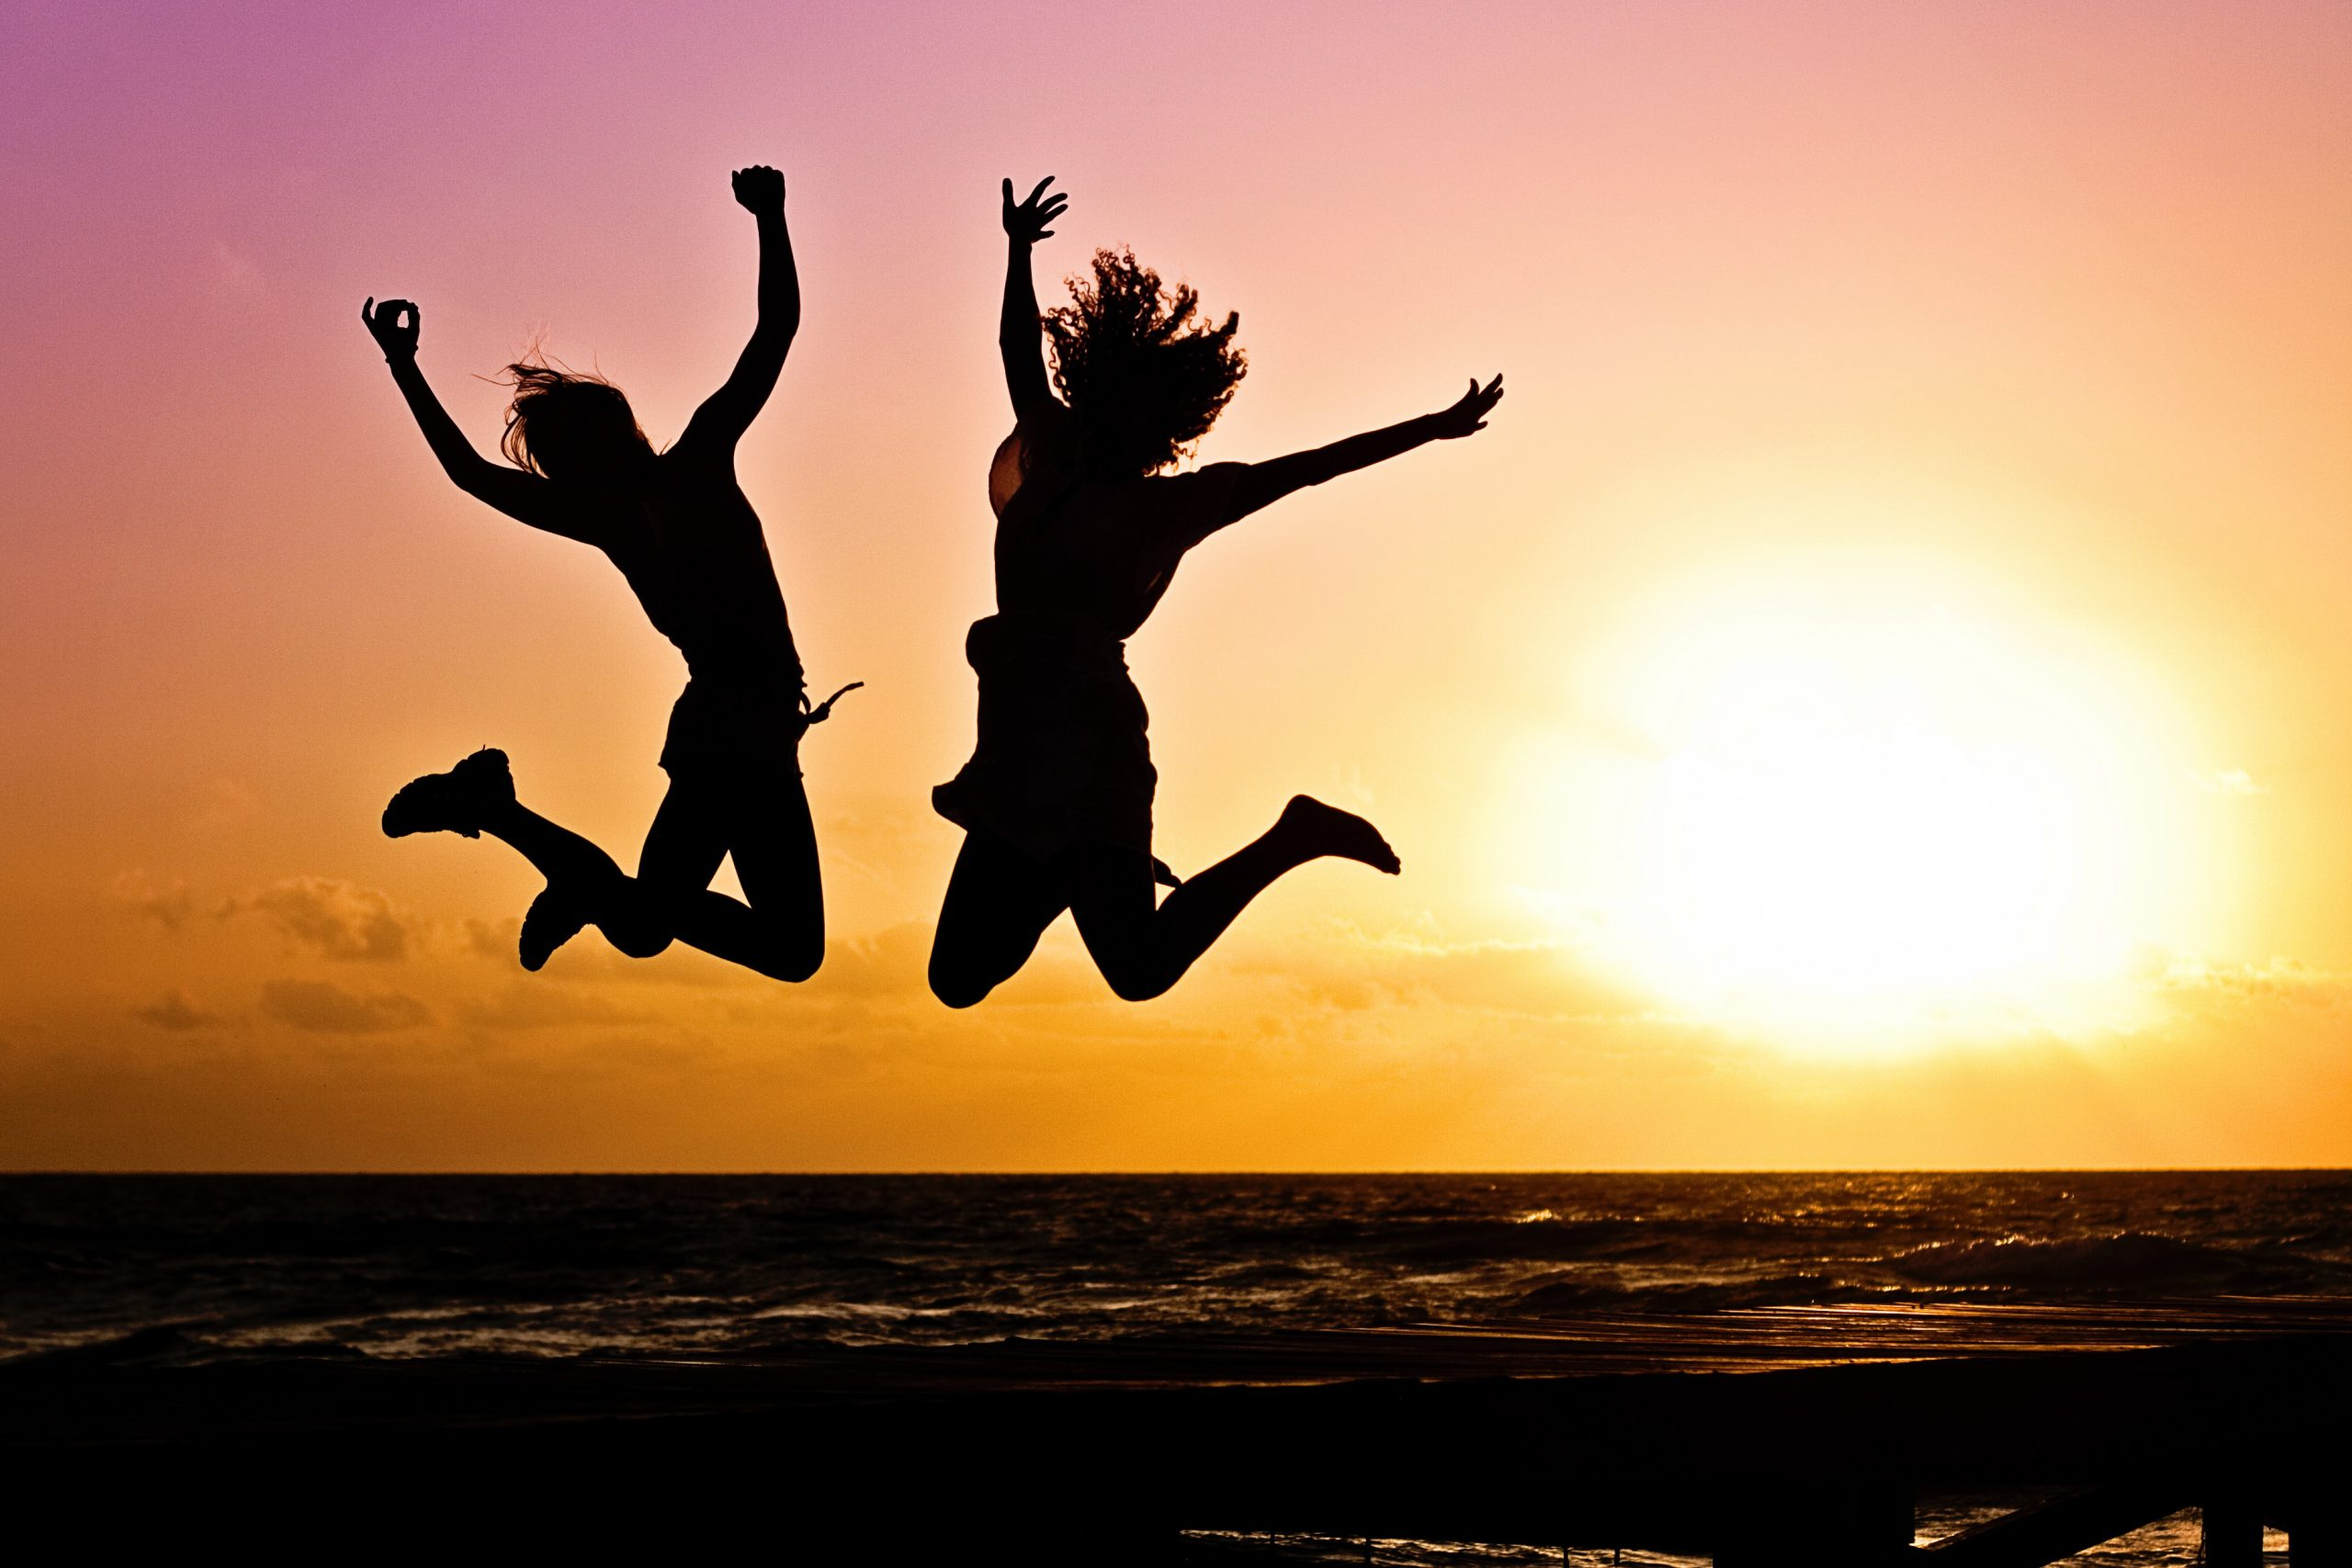 What is the International Day of Happiness? Take The Quiz To Find Out